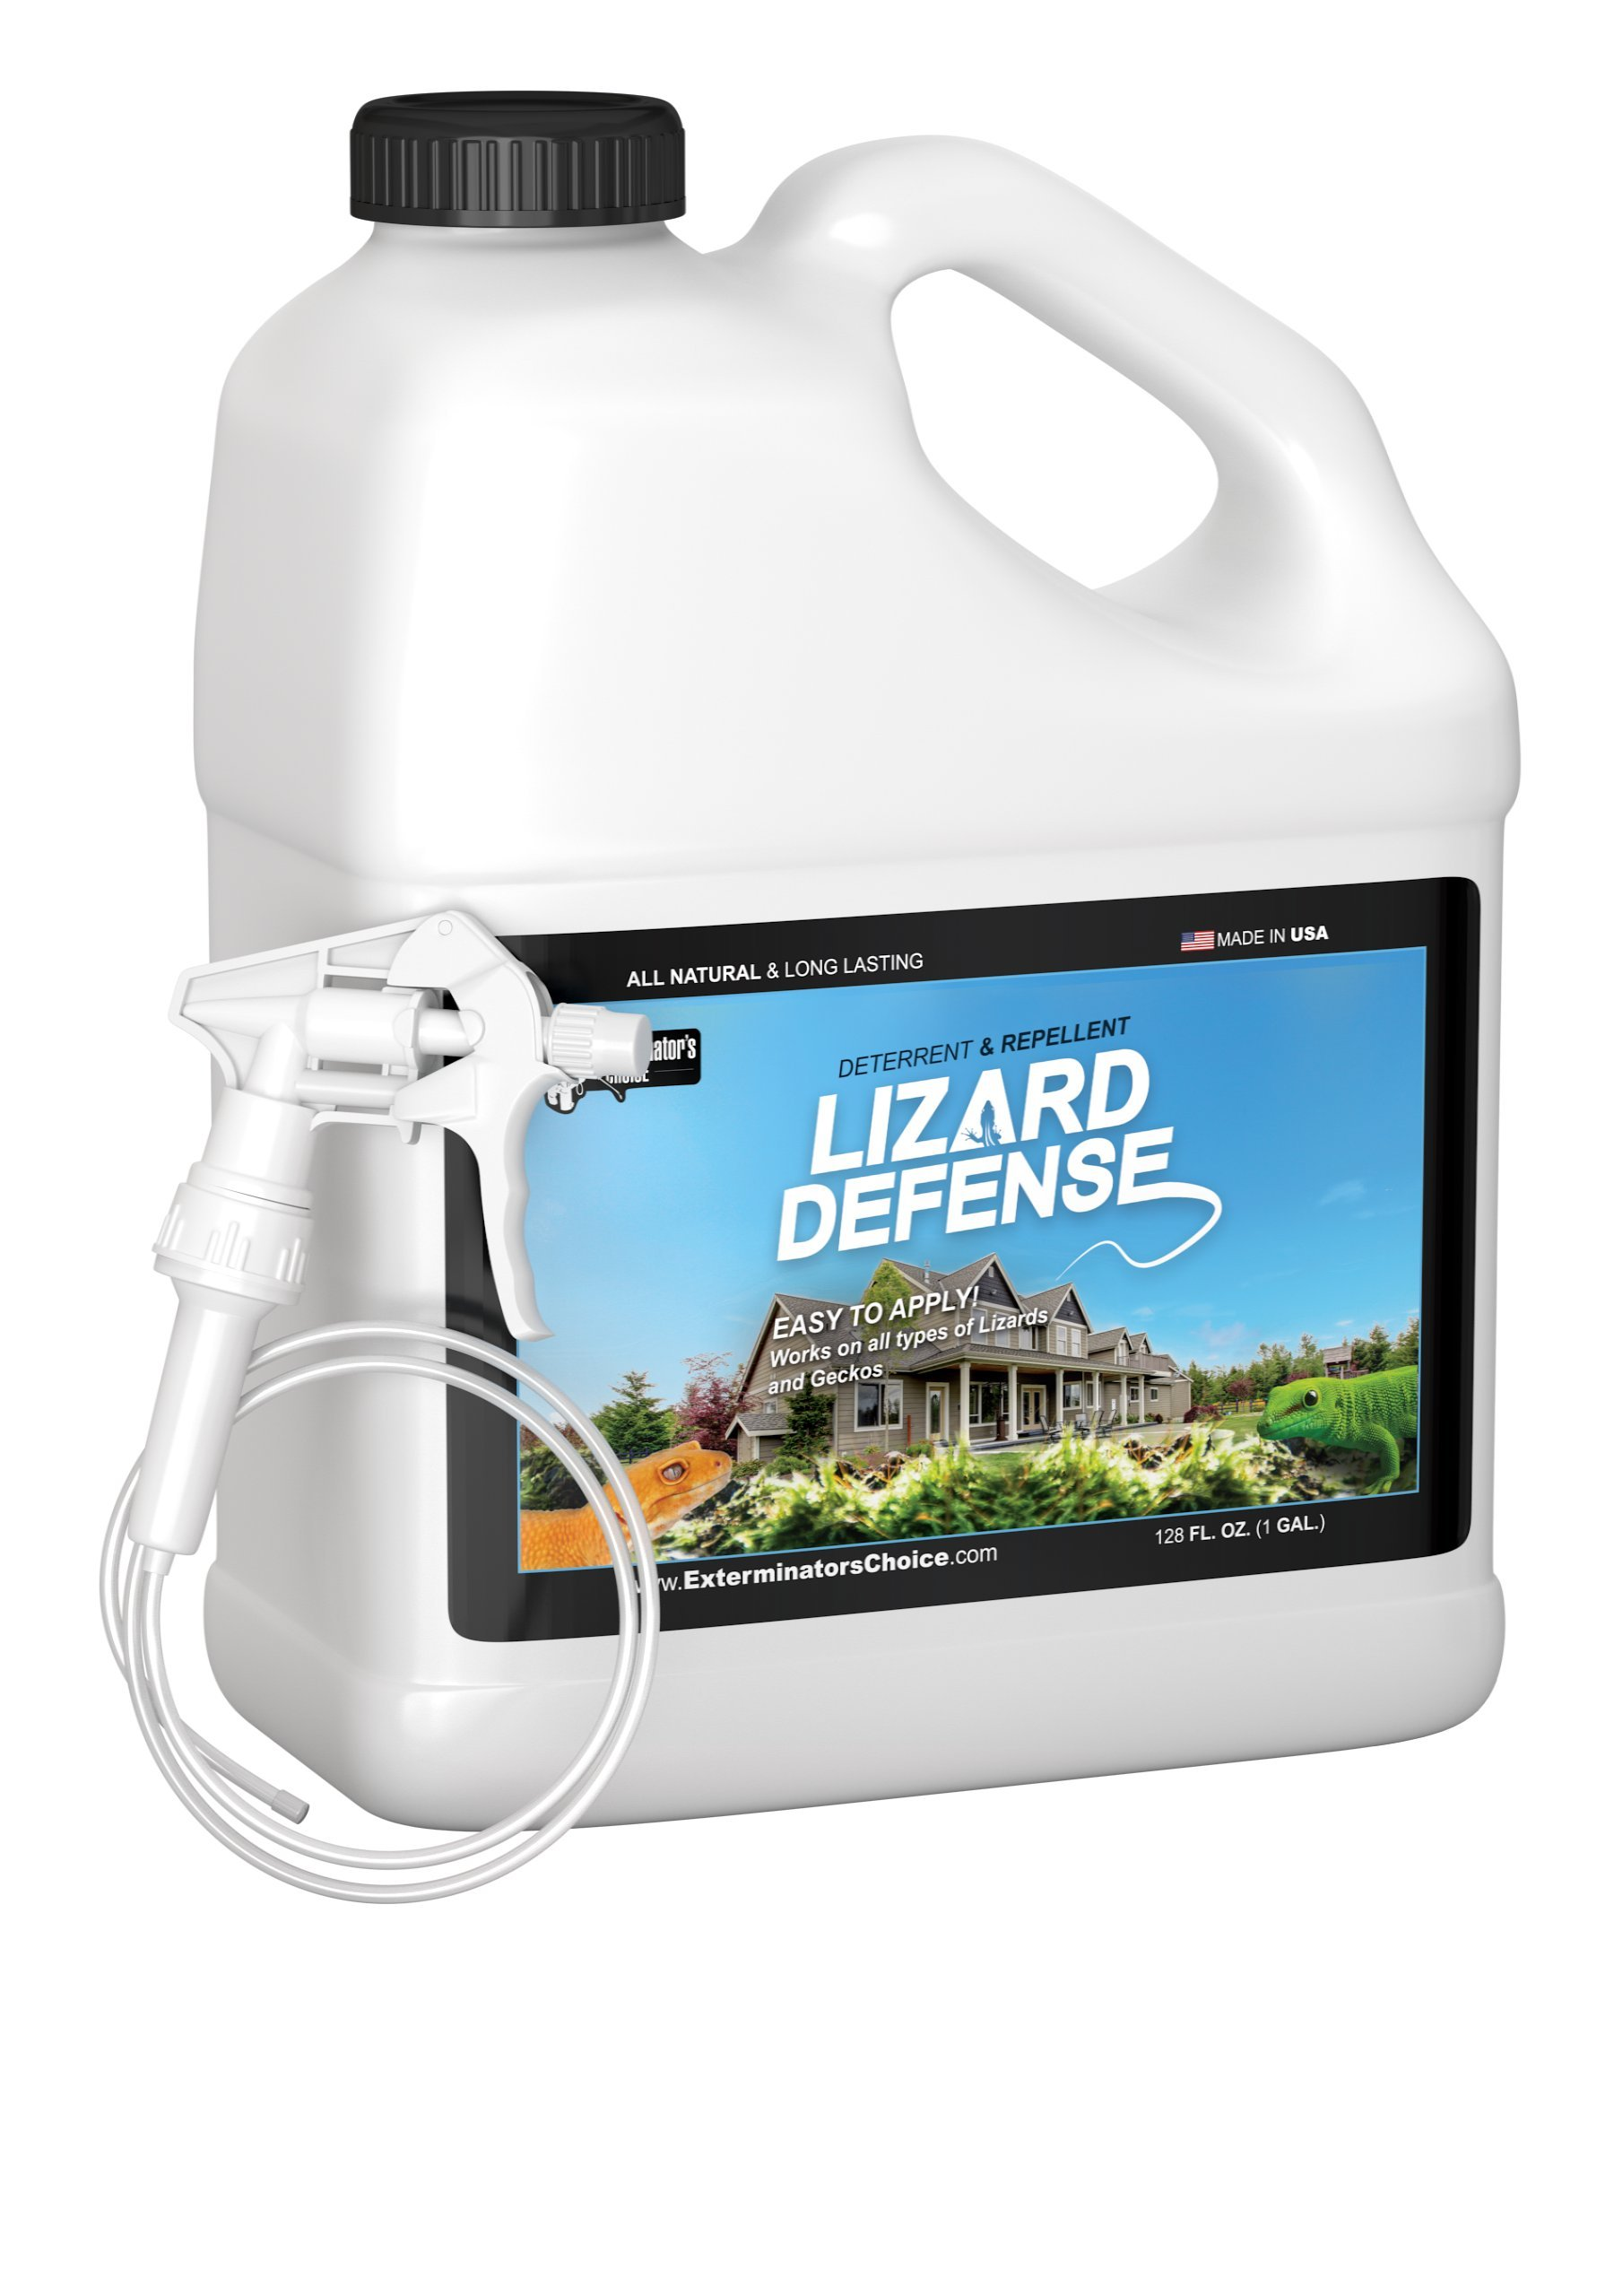 Lizard Defense One Gallon (128 oz) Natural Repellent and Deterrent for All Lizards and Geckos by Exterminators Choice